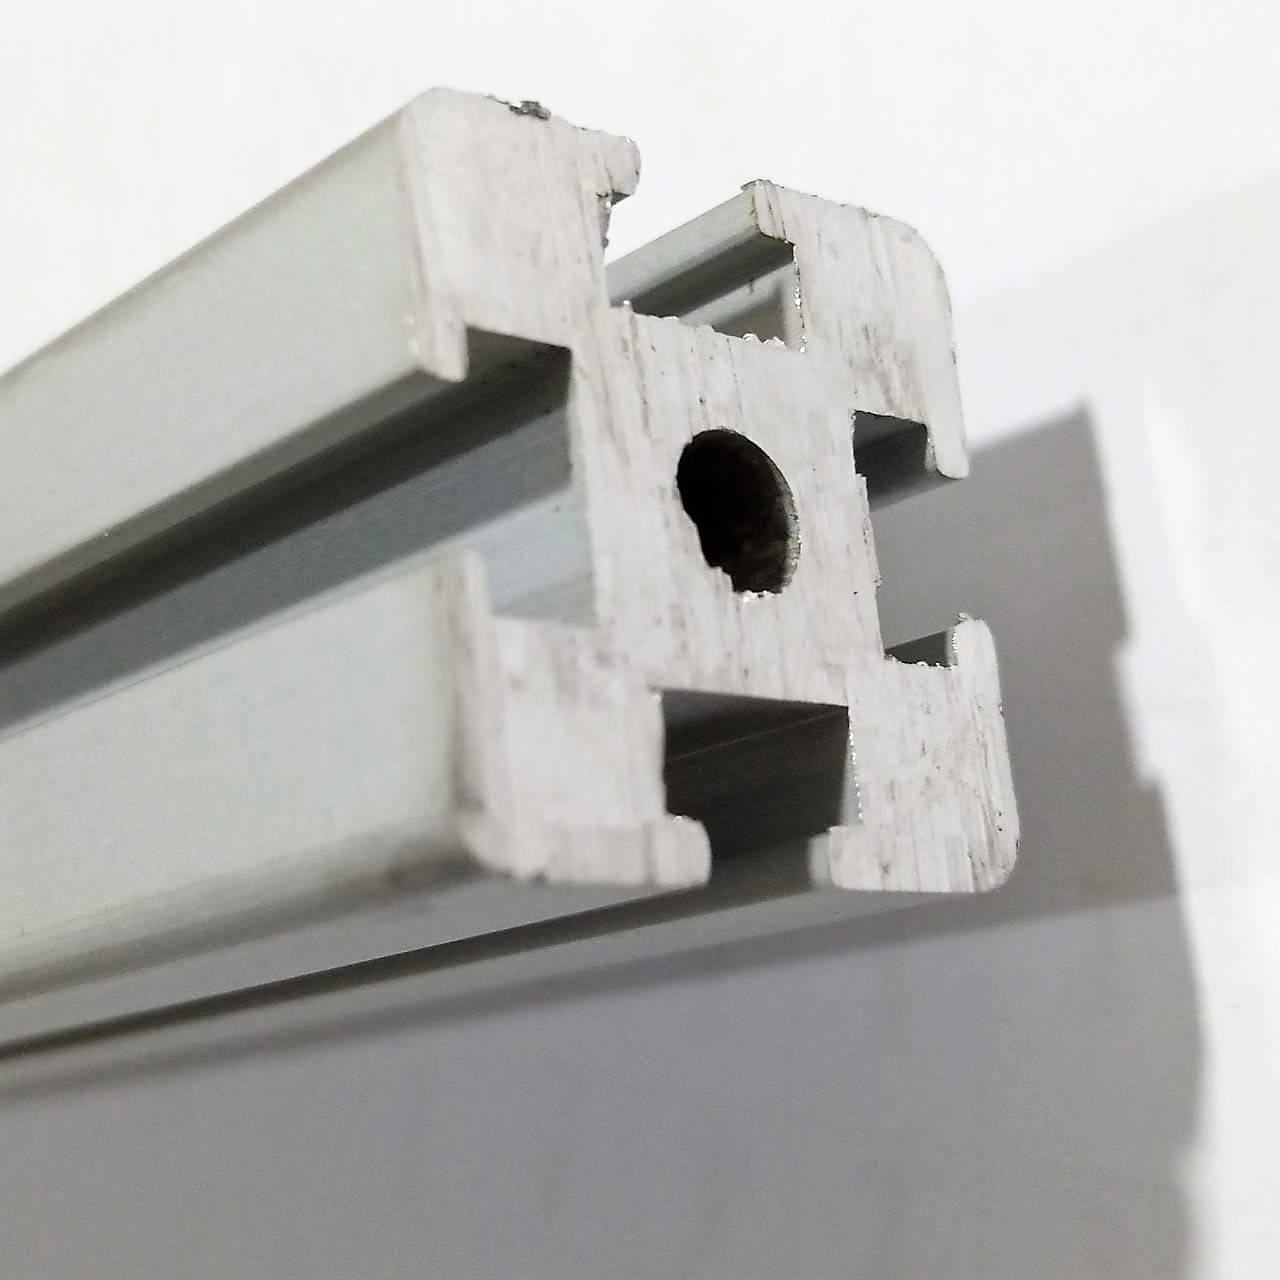 2020 Aluminum Profile / Aluminium Extrusion For CNC And 3D Printer